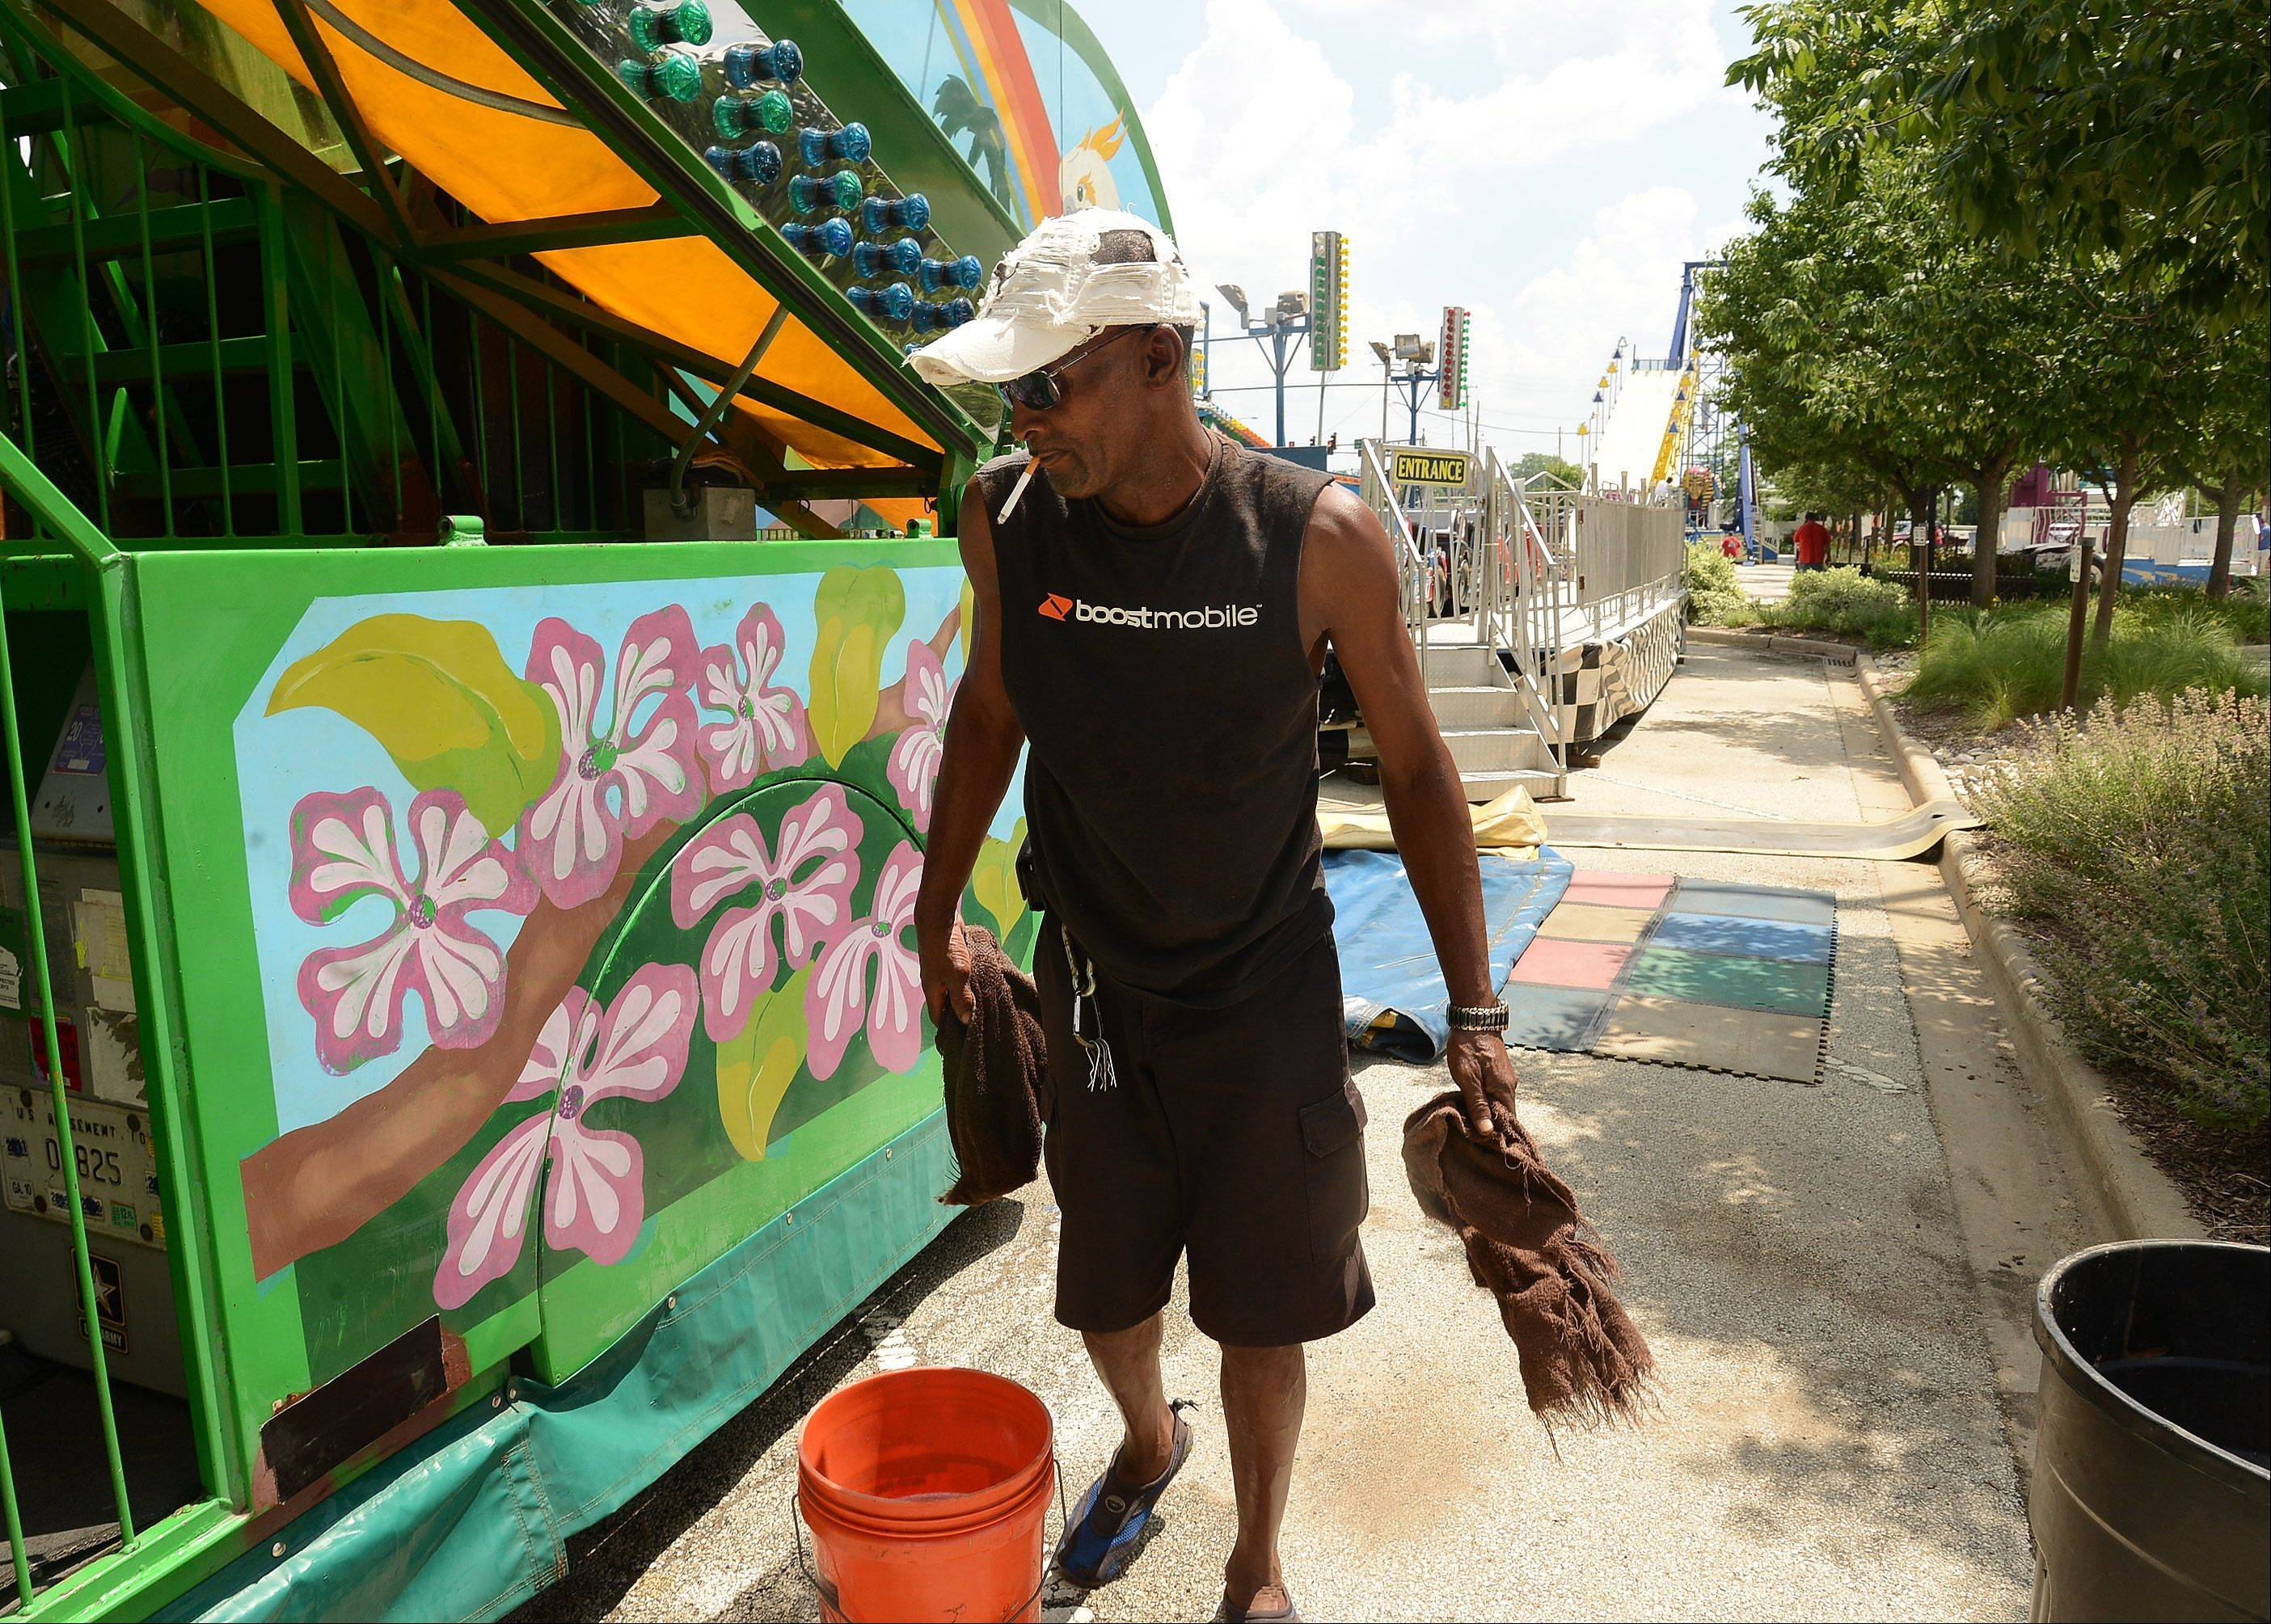 Eddie Wellington of D&J Amusements washes down the Rainbow Rock ride Thursday in preparation for Des Plaines Summer Fling in downtown Des Plaines. The three-day festival highlighted by live music, food, games and carnival rides kicks off Friday.